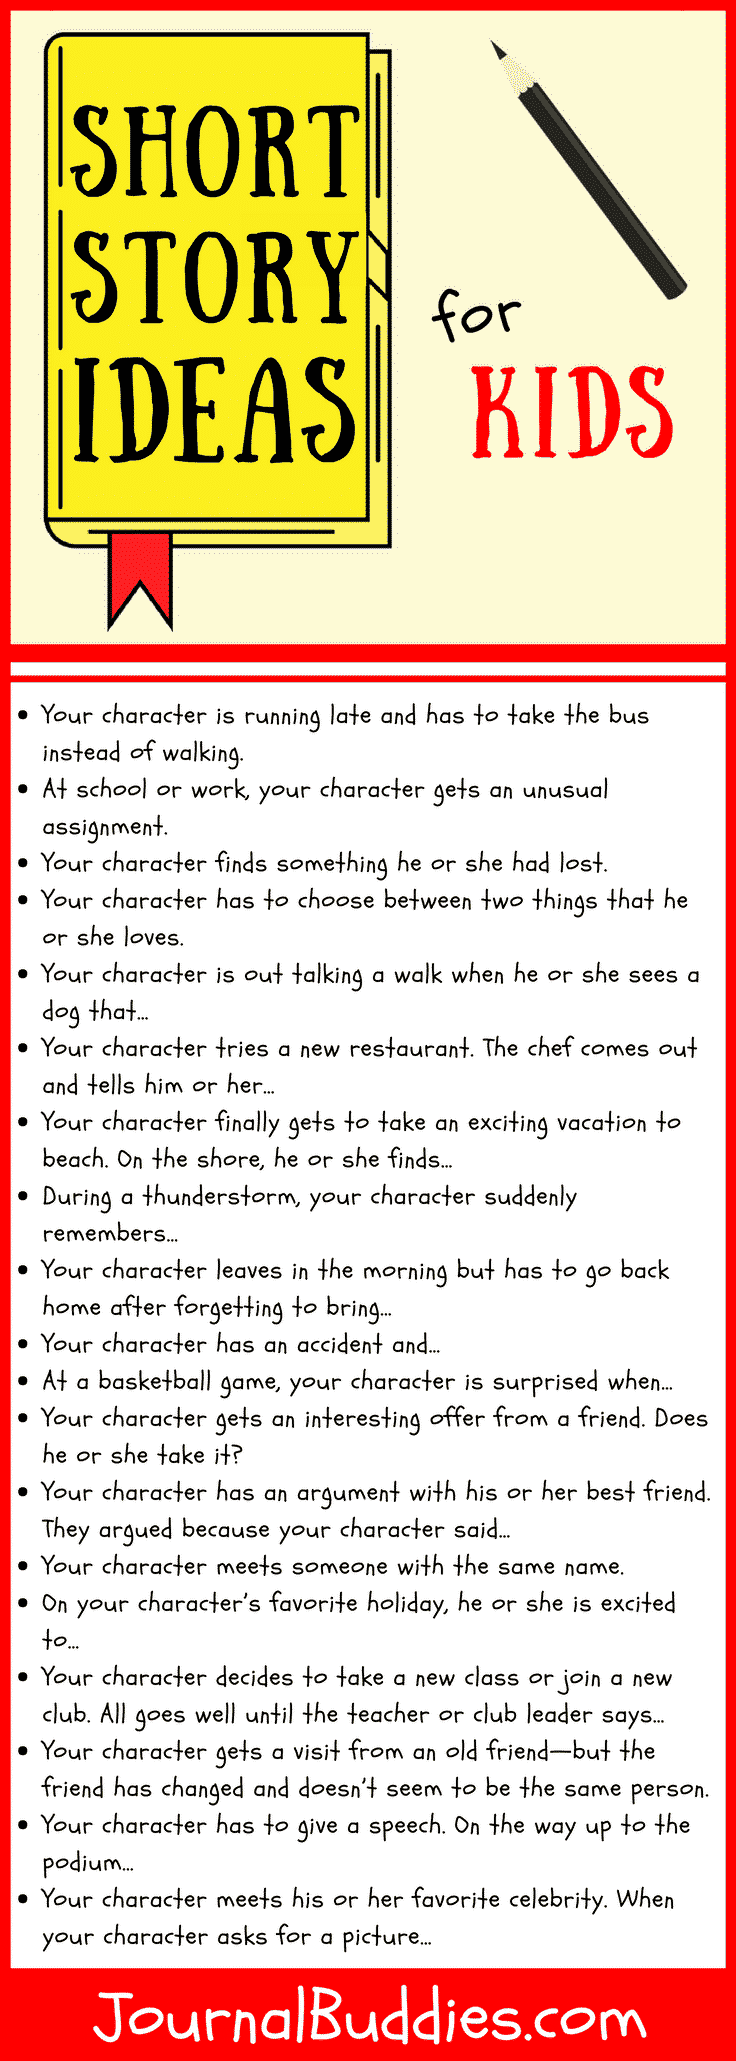 See this! Students can use these writing prompts to write 30 individual short stories—or they can combine several prompts together to create a longer piece. In each prompt, the student's character encounters a surprising situation or runs into a dilemma.